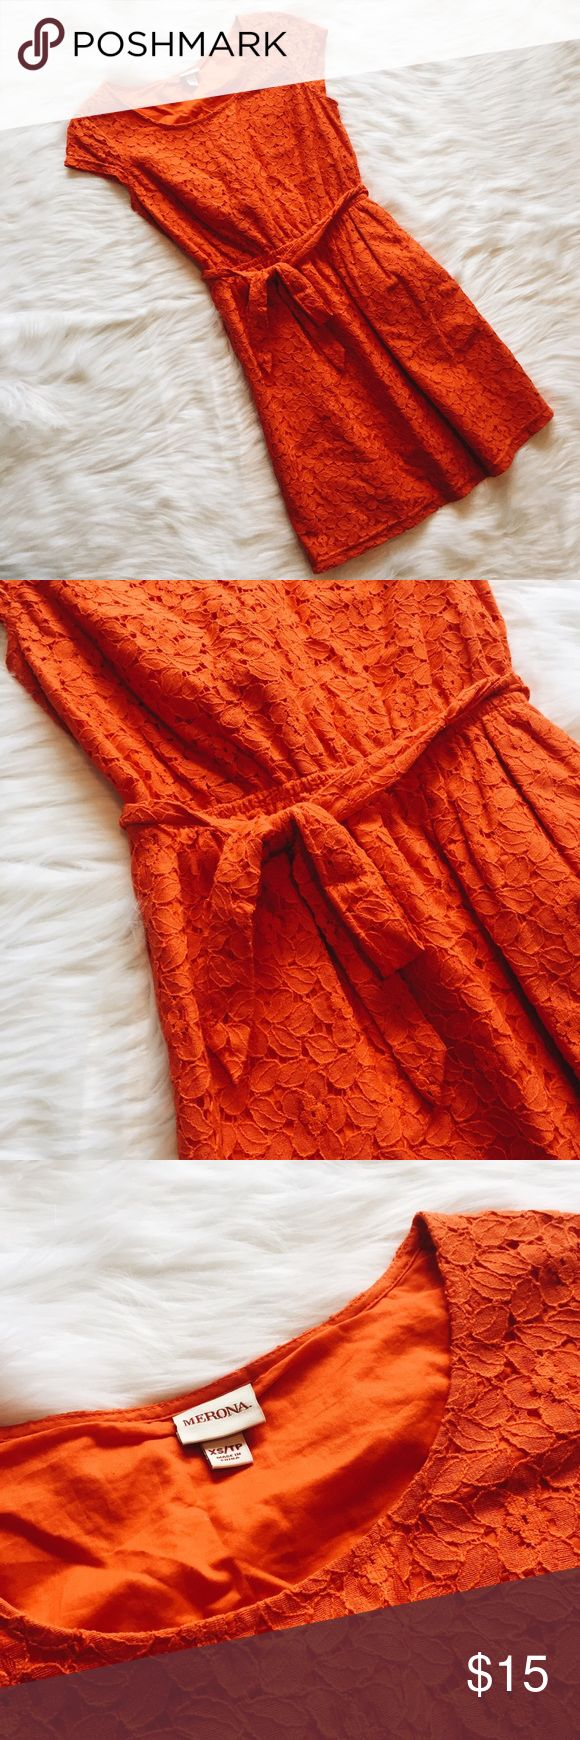 🆕 Merona Orange Lace Dress Merona Orange Lace Dress. Short sleeves, all-over lace detail, waist belt that can be tied in the front or back. Excellent used condition - no flaws. Smoke free home :) ask questions and bundle bundle bundle! No model requests please. Merona Dresses Mini